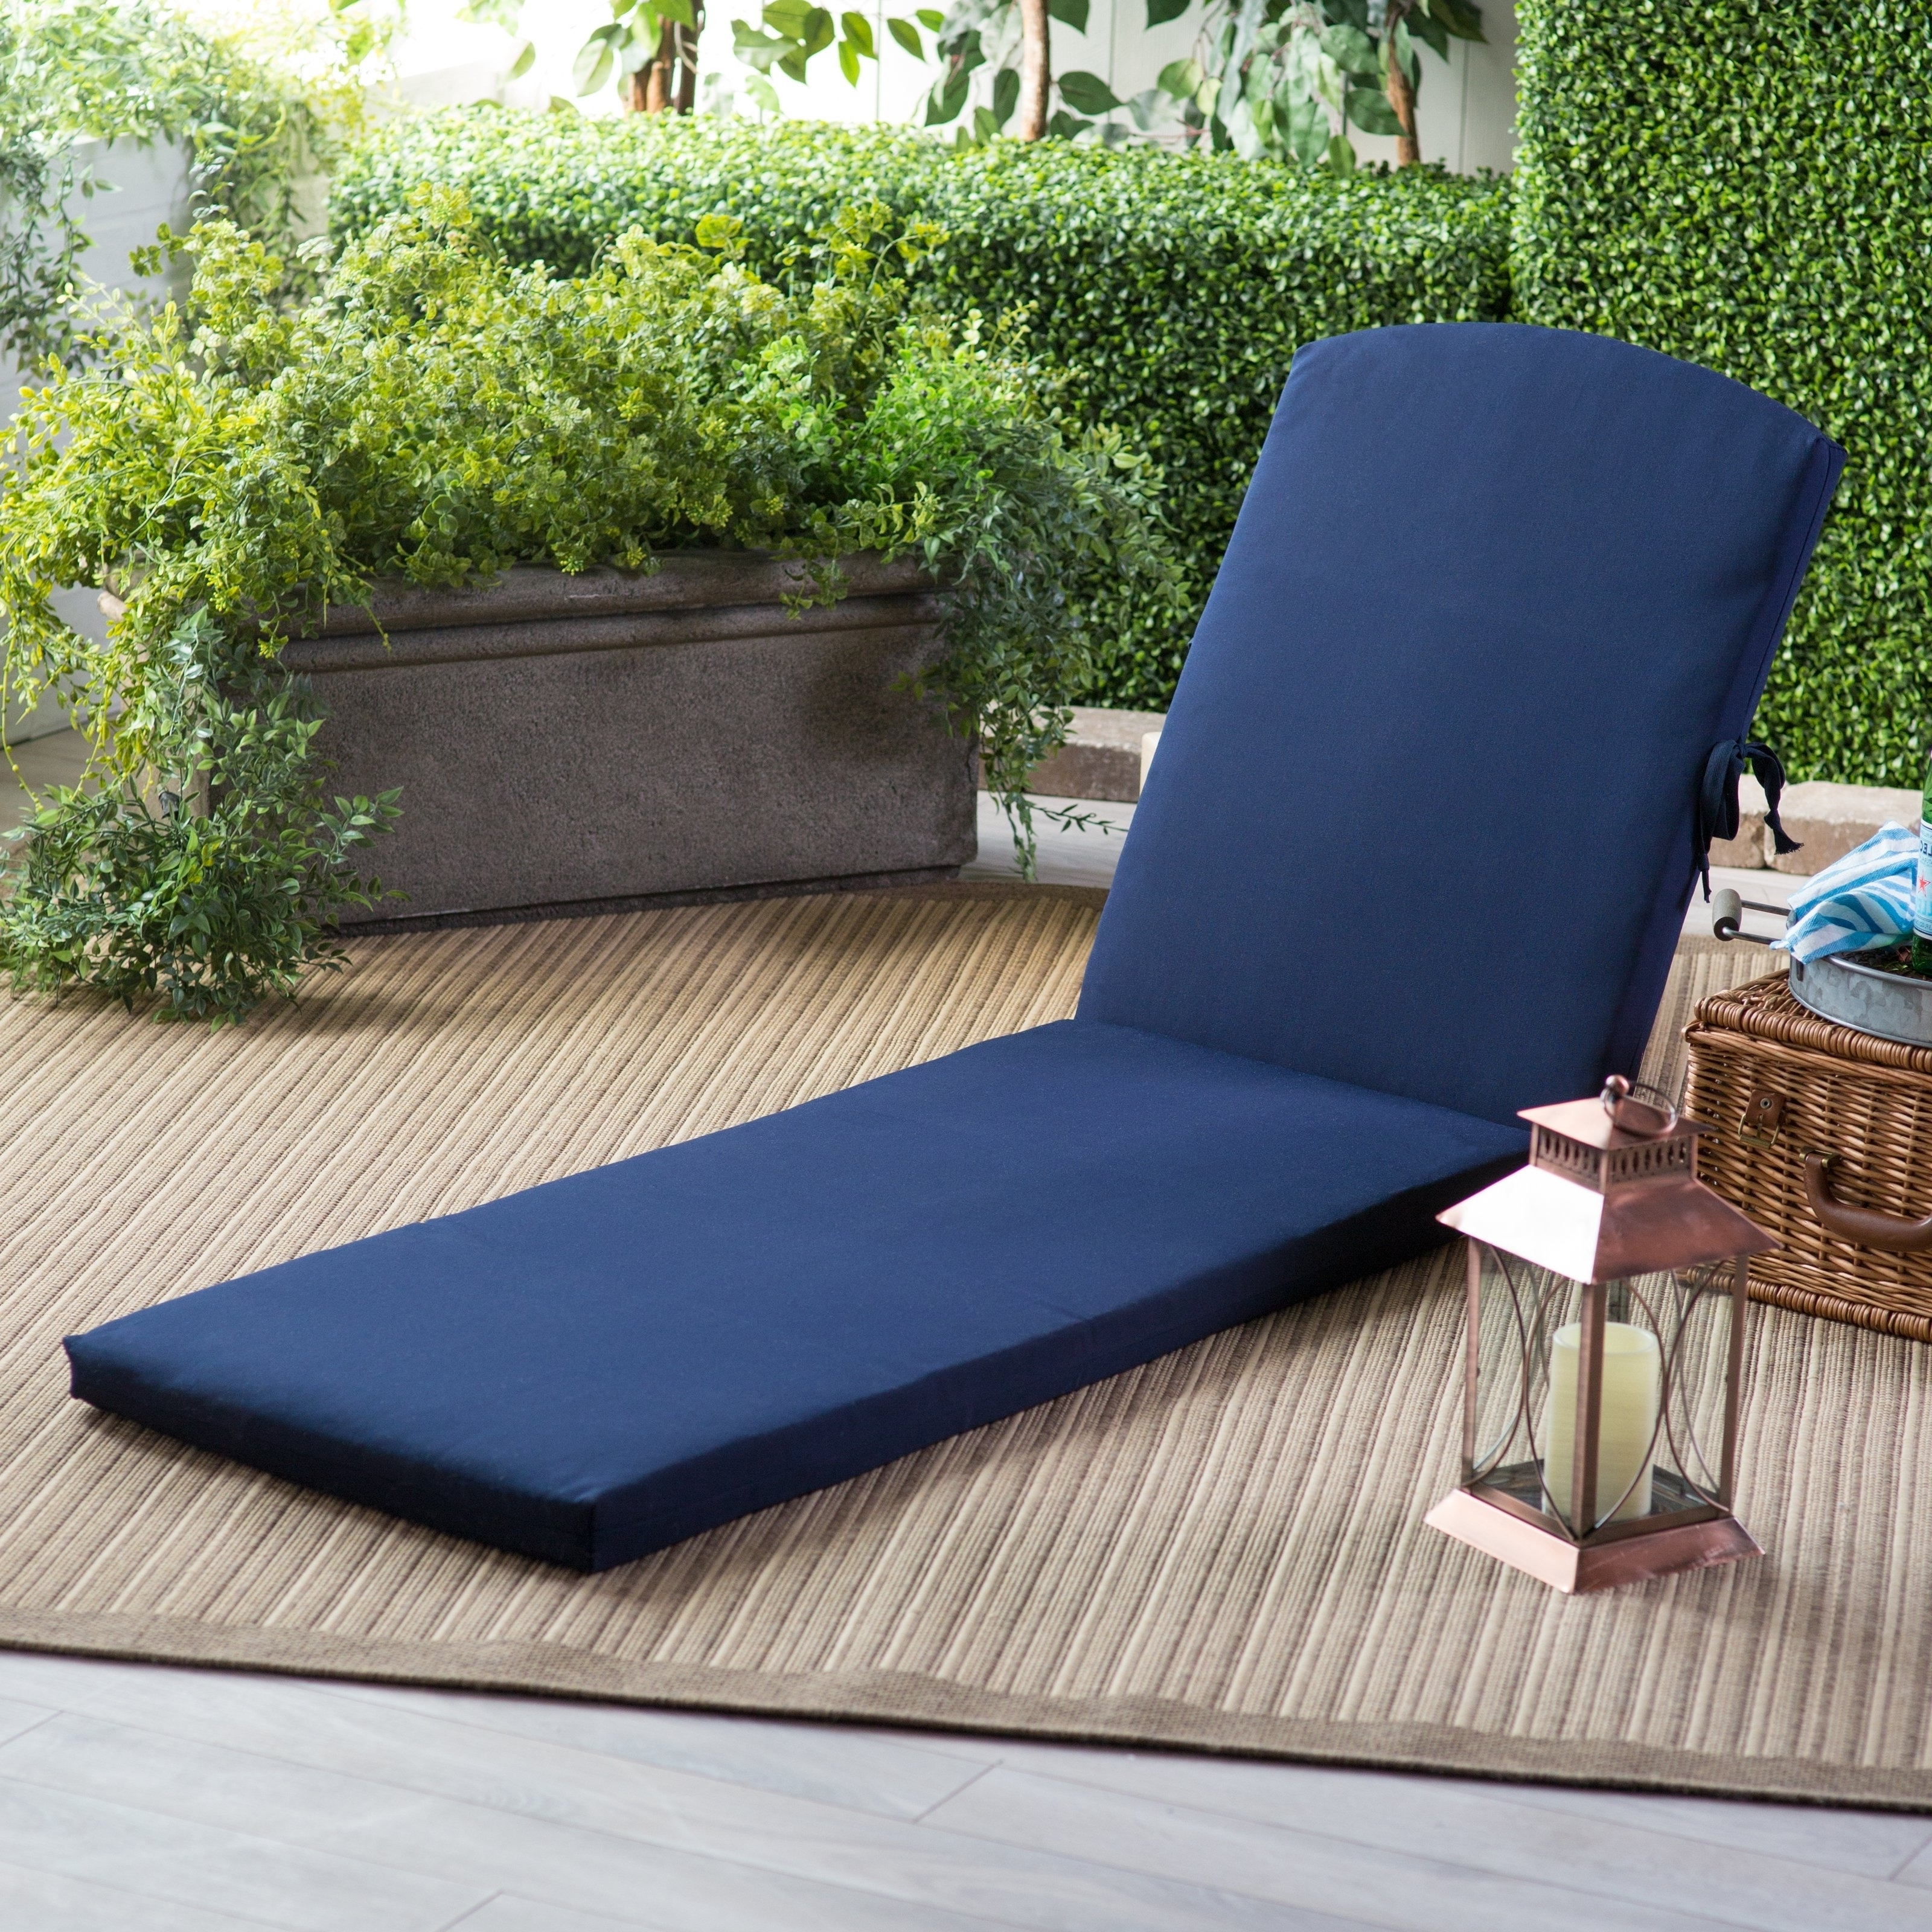 Widely Used Inspirations Excellent Walmart Patio Chair Cushions To Match Your In Walmart Chaise Lounge Cushions (View 6 of 15)